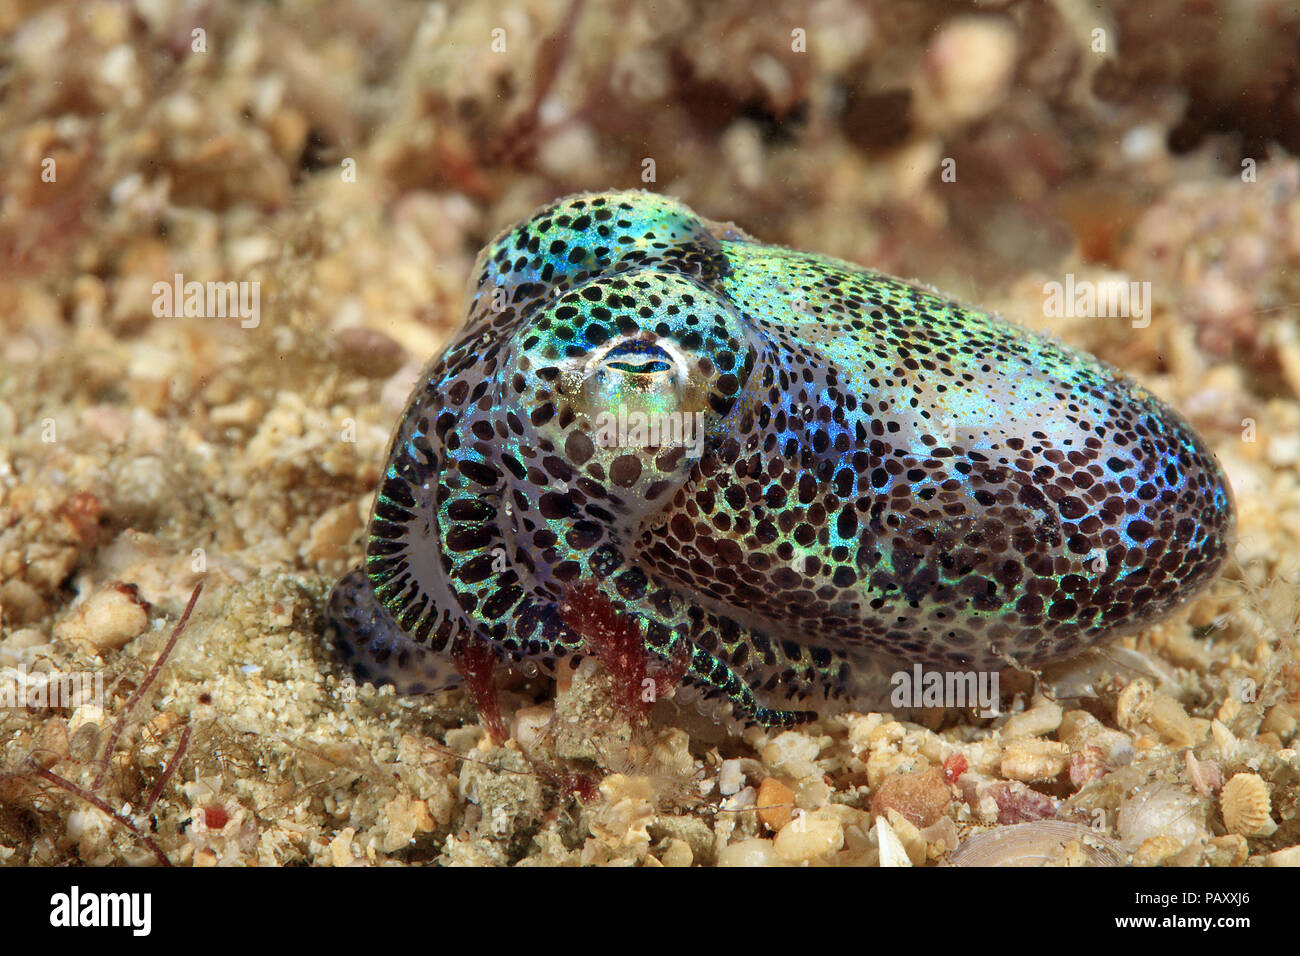 Berry's bobtail squid or Hummingbird bobtail squid (Euprymna berryi), Sabang Beach, Mindoro, Philippines - Stock Image